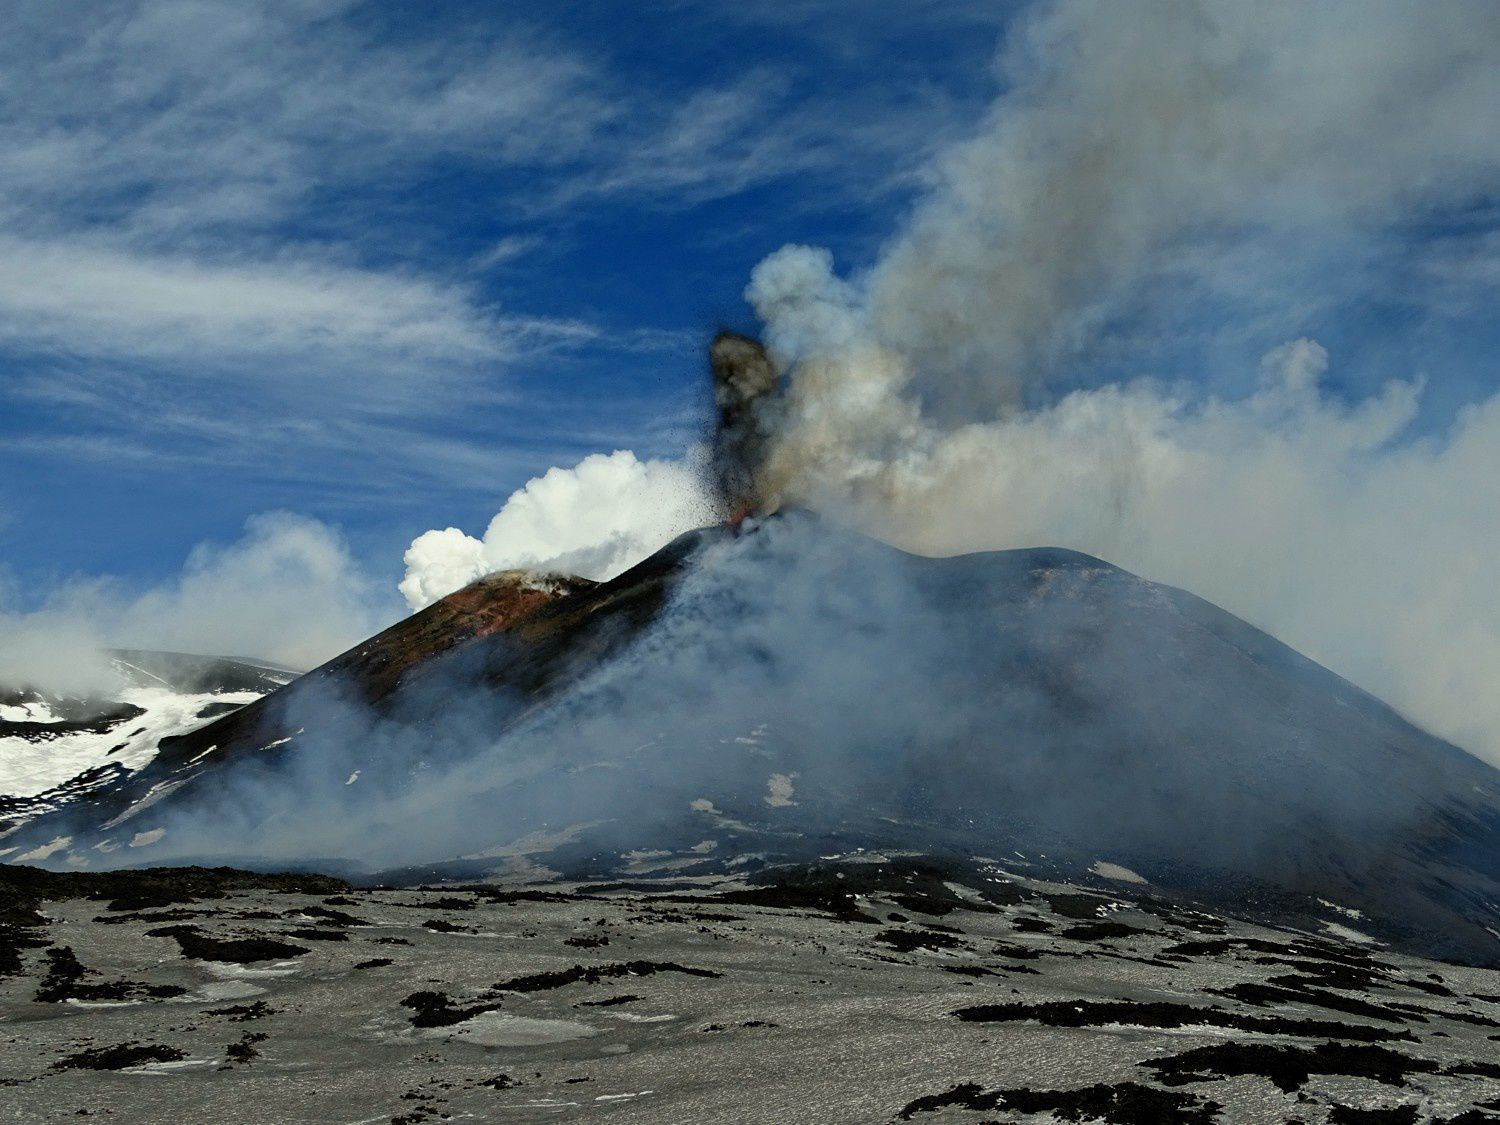 Etna - morning activity on 15.03.2017 - photos of Boris Behncke taken 1 km south of the cone